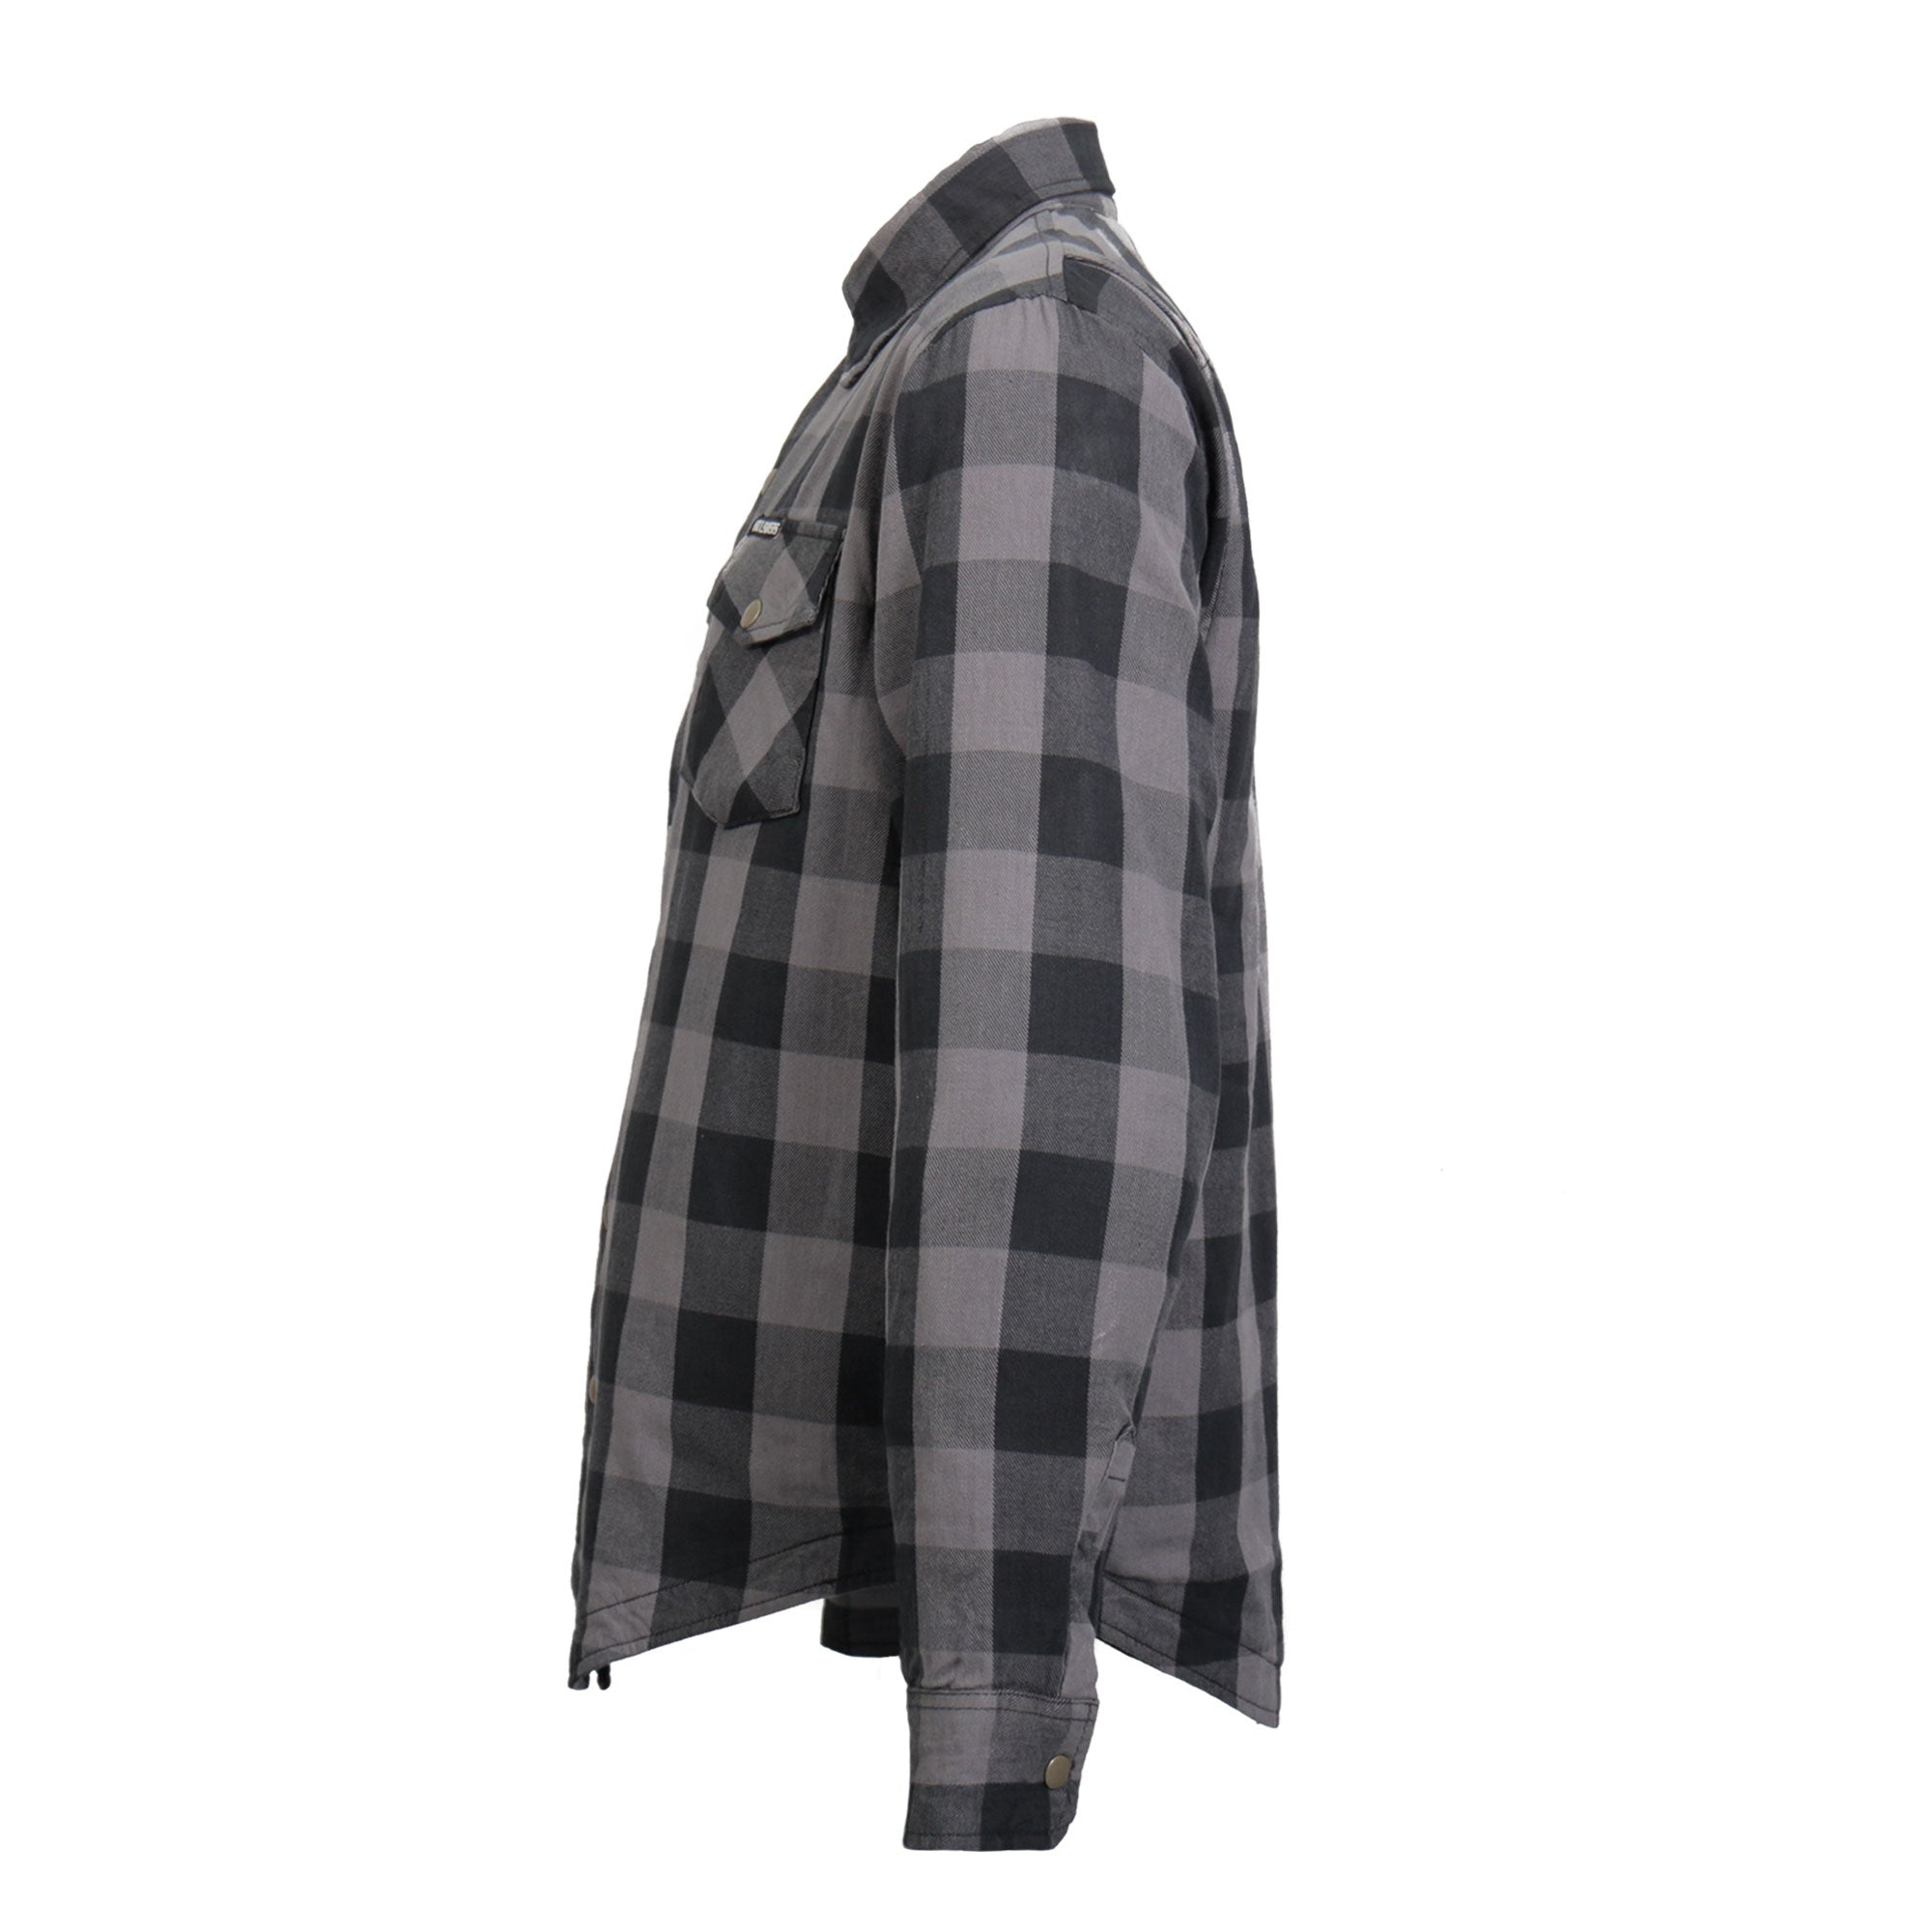 Hot Leathers Gray and Black Armored Flannel Jacket